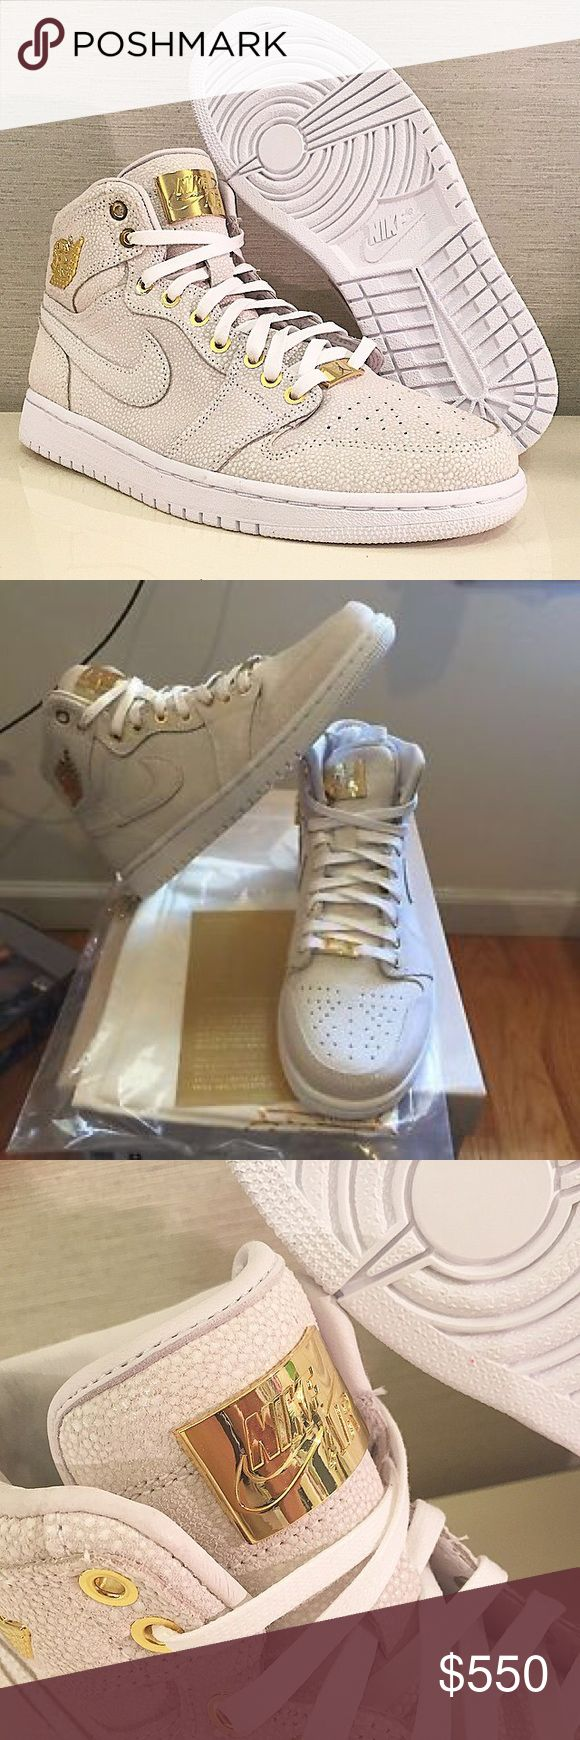 """Brooklyn Allstar Retro 1 High Pinnacle The Nike Air Jordan 1 Pinnacle have the feel of the original Air Jordan with a 24 karat gold upgrade in the detailing. Available in caviar white. they're the perfect mix of high tops and bling. """"Brooklyn Allstar"""" RARE Jordan Shoes Athletic Shoes"""